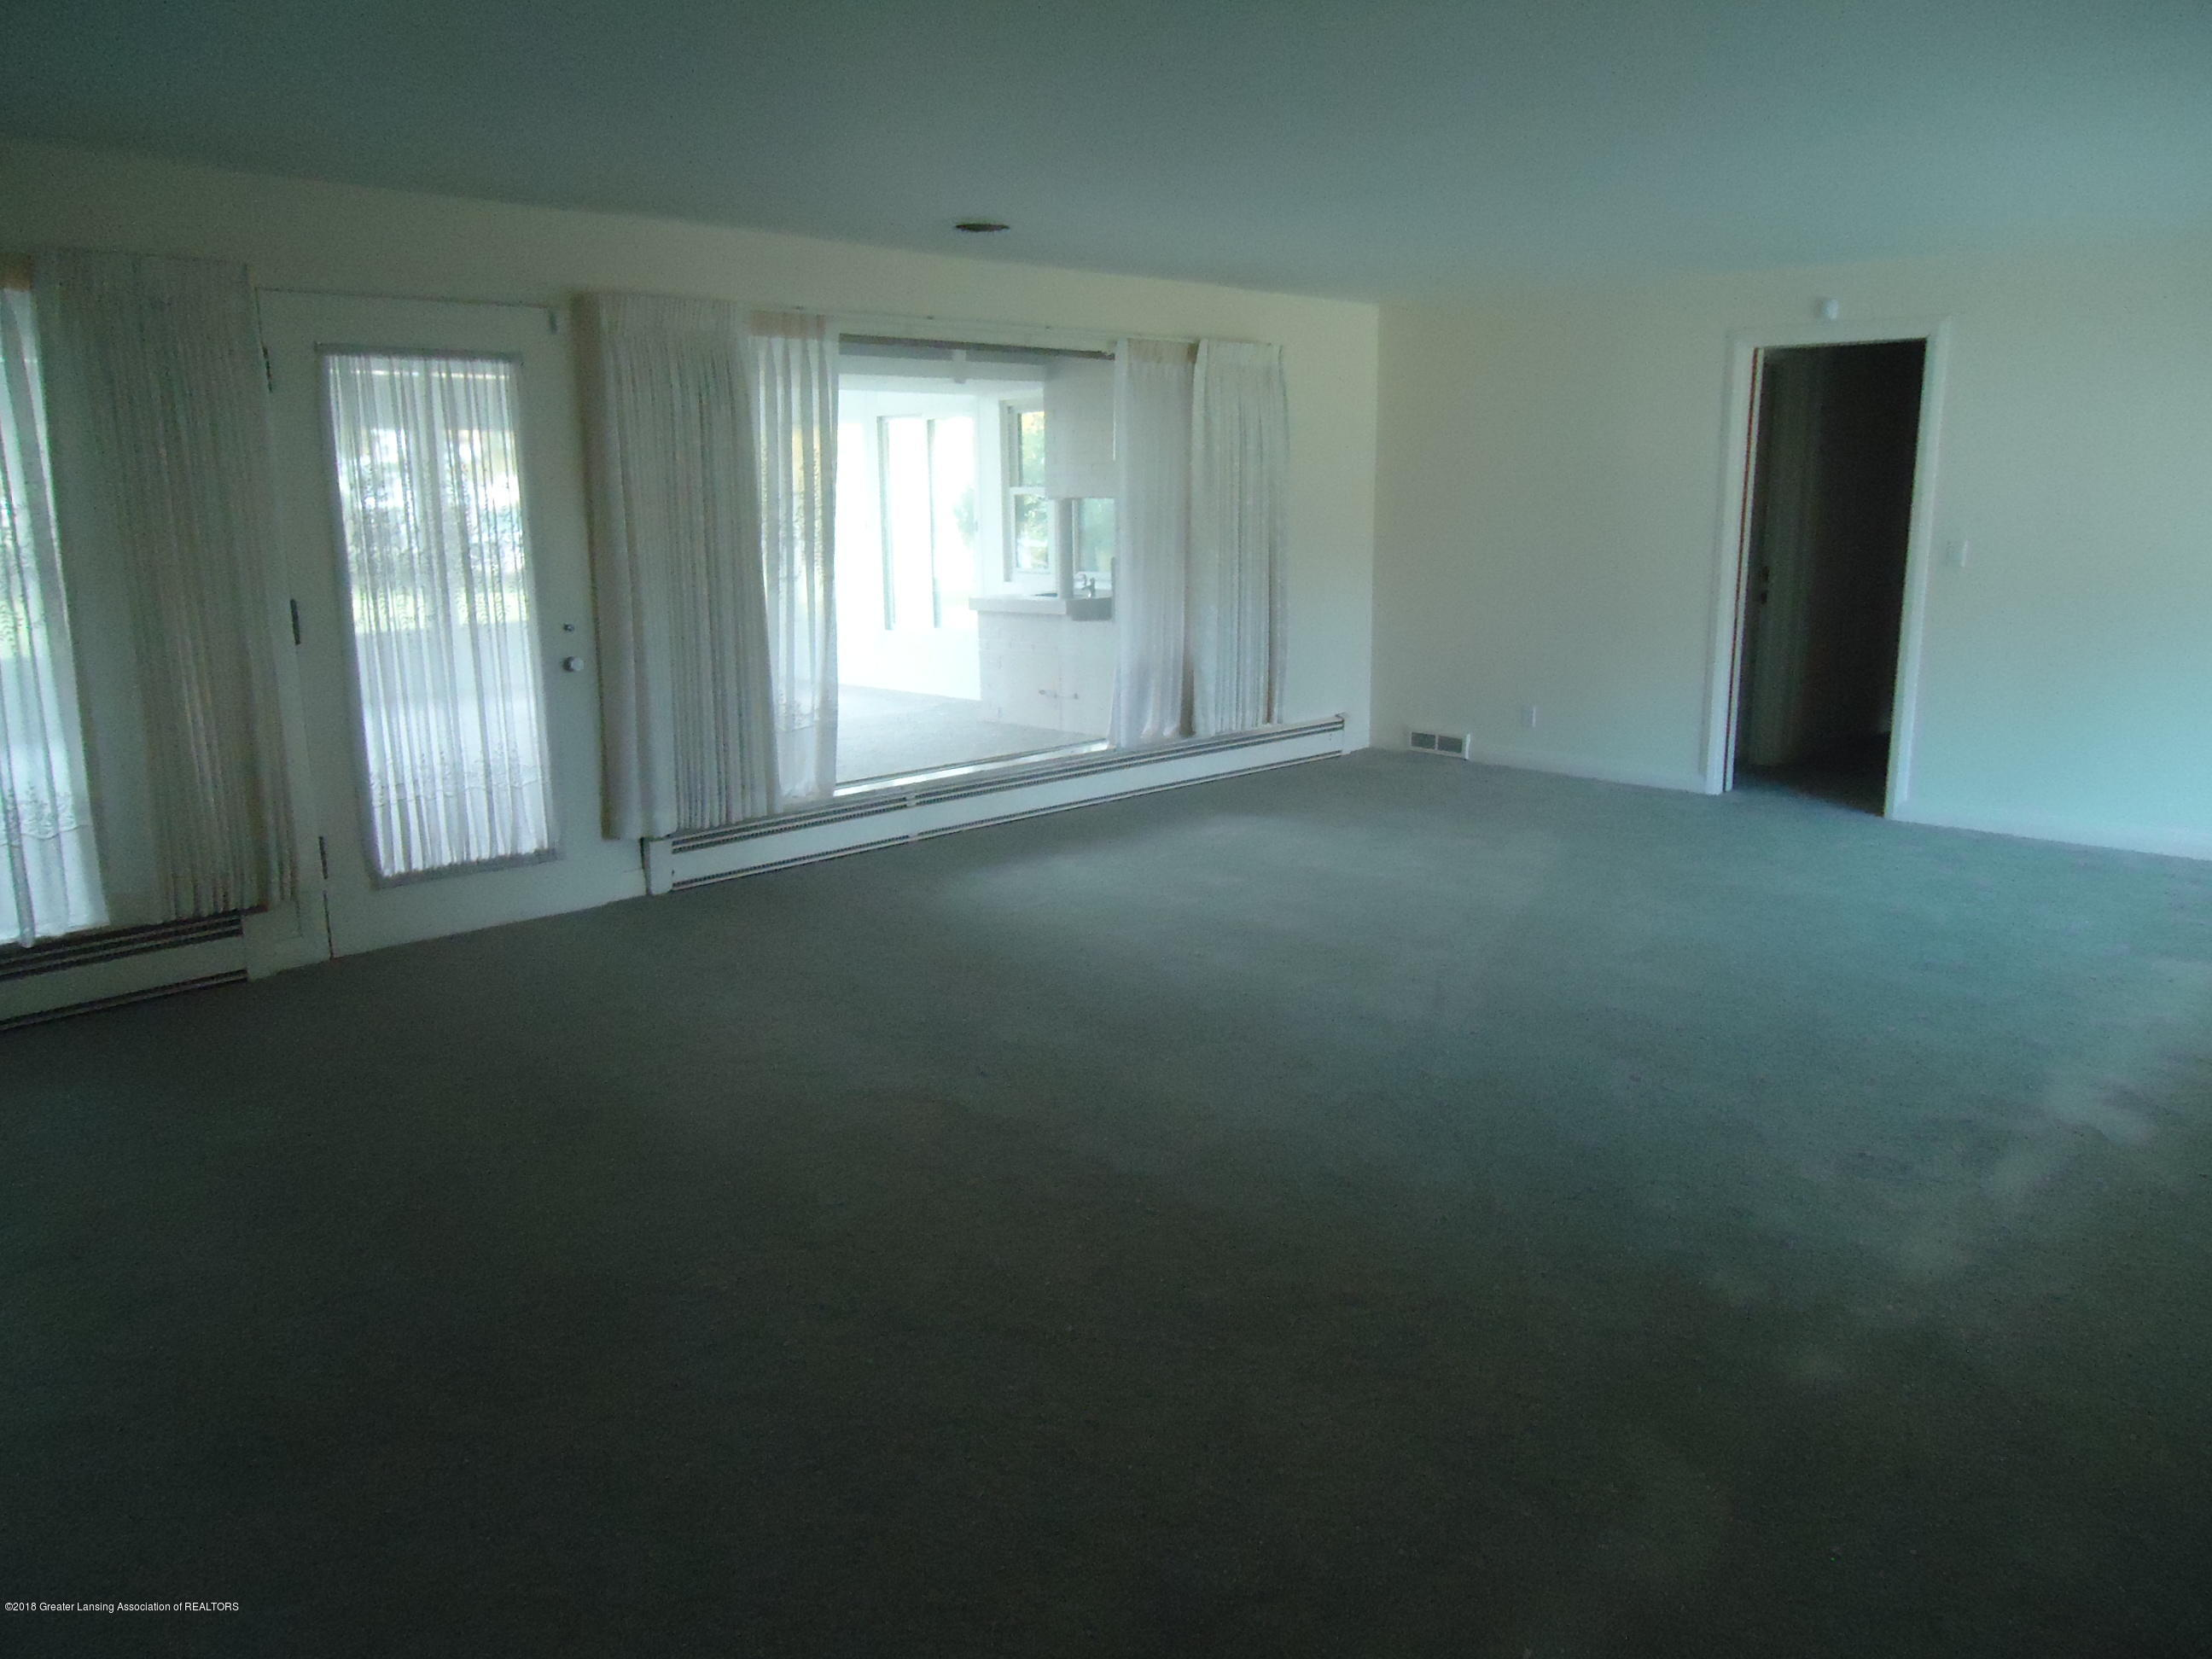 333 S Sheldon St - LR New Carpet - 45